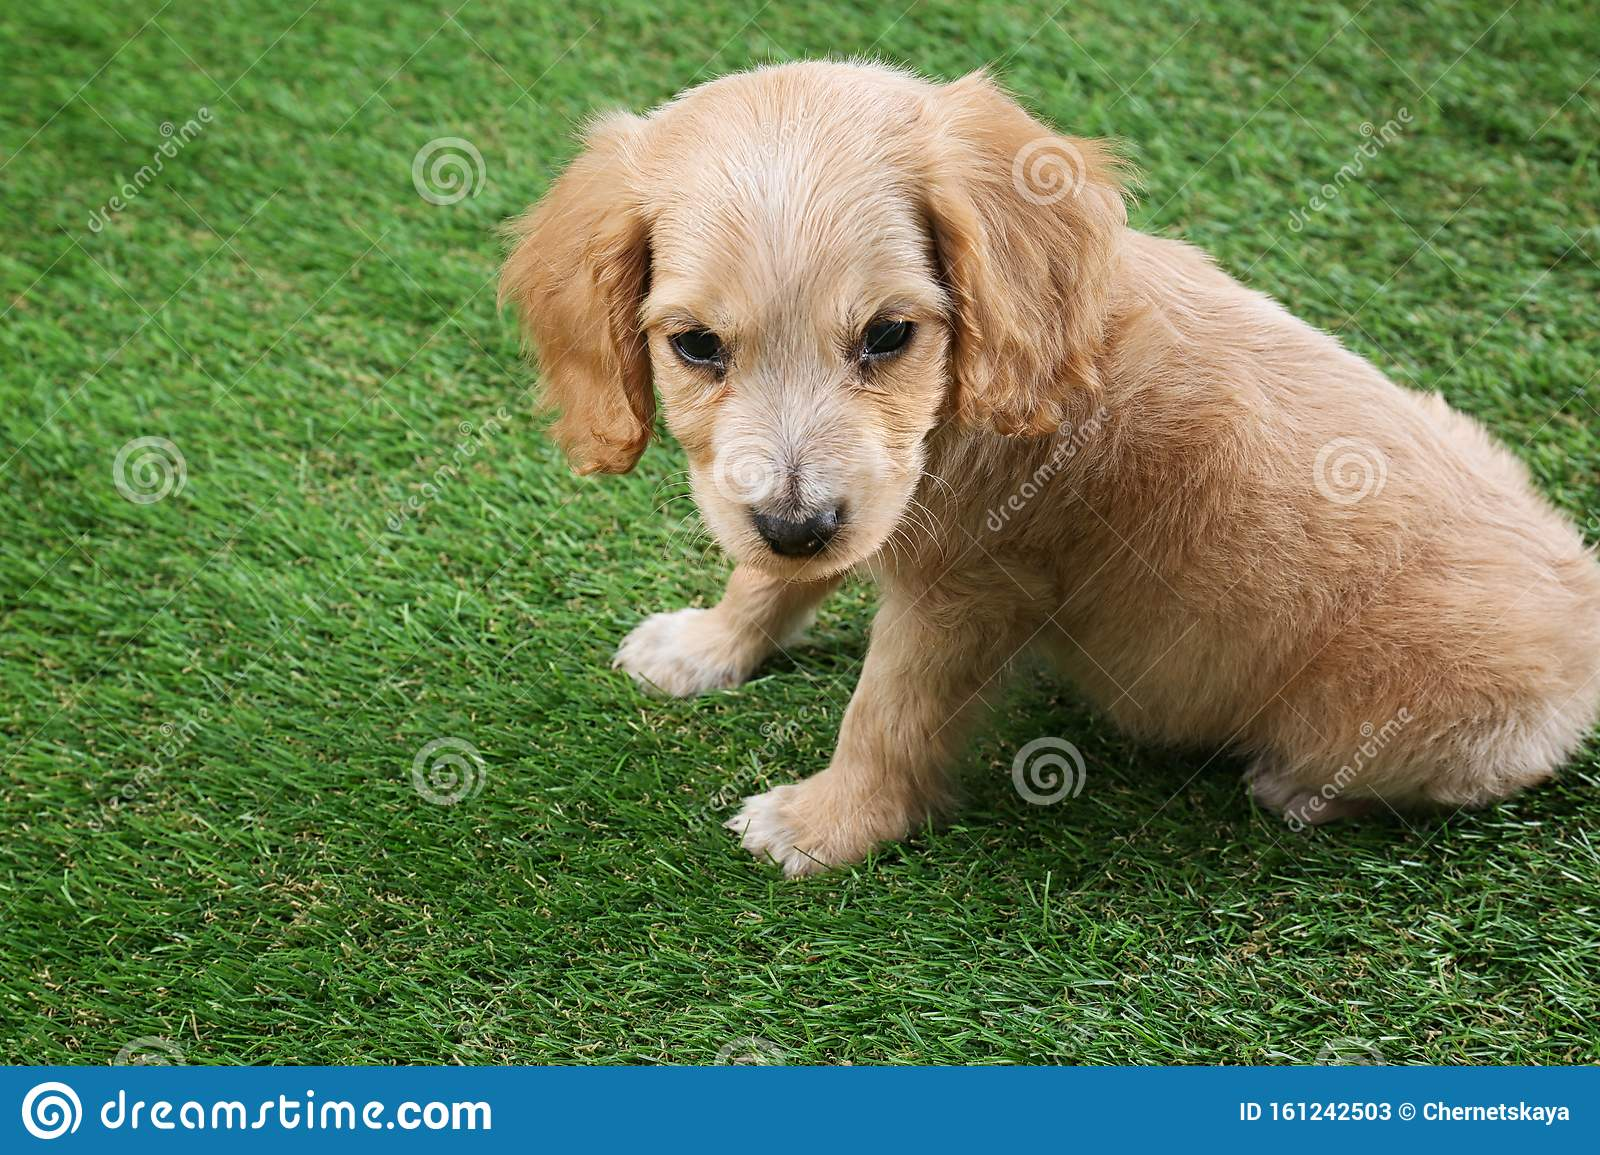 Cute English Cocker Spaniel Puppy On Grass Space For Text Stock Image Image Of Mammal Furry 161242503